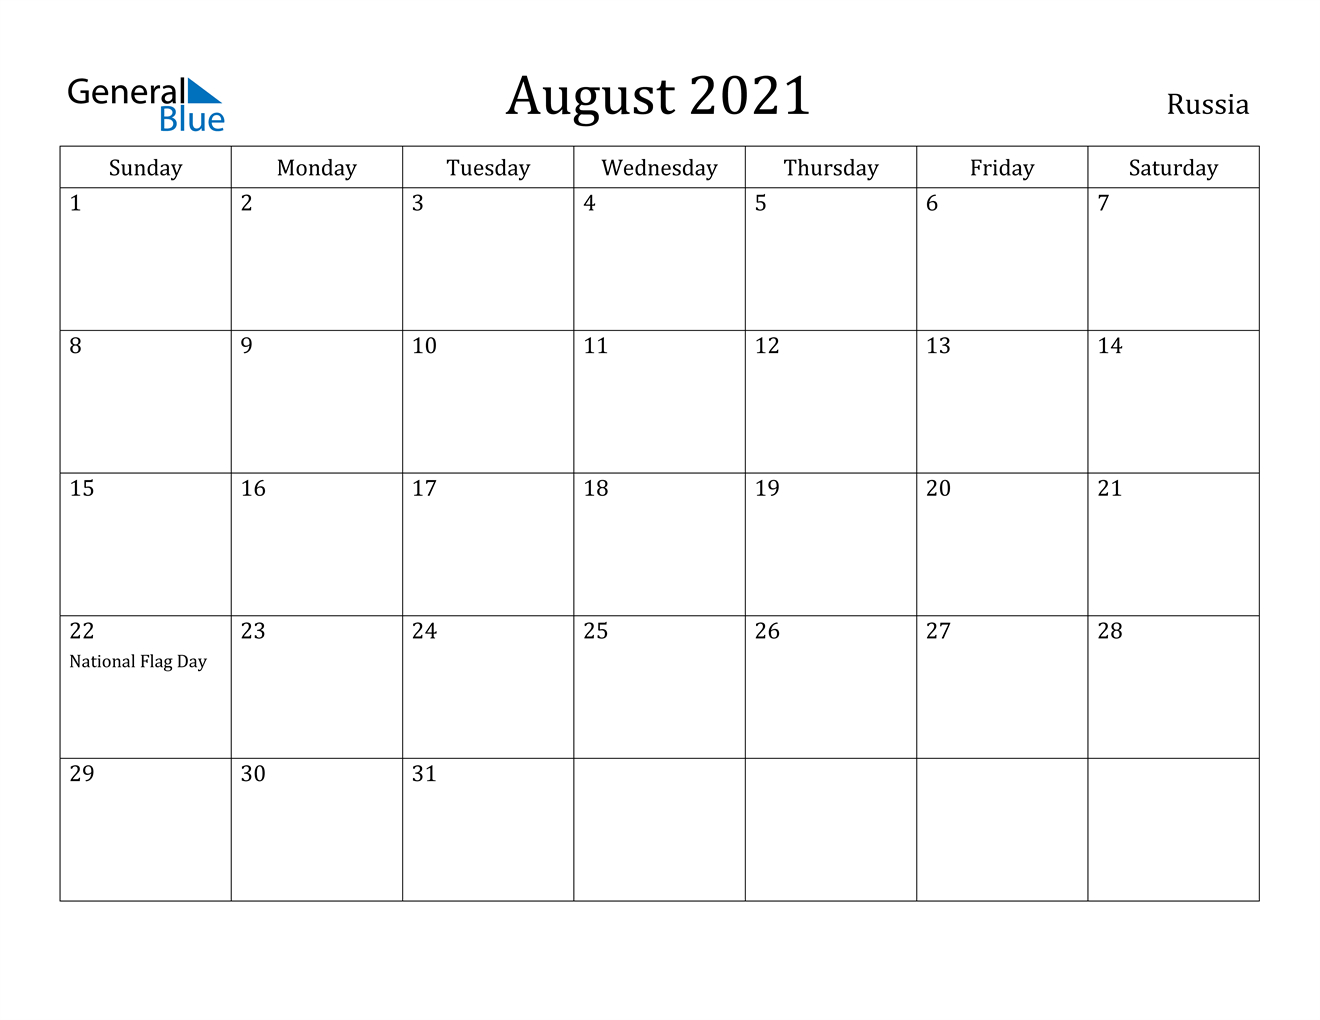 Russia August 2021 Calendar With Holidays inside Free Calendars 2021 Word Doc Printable August